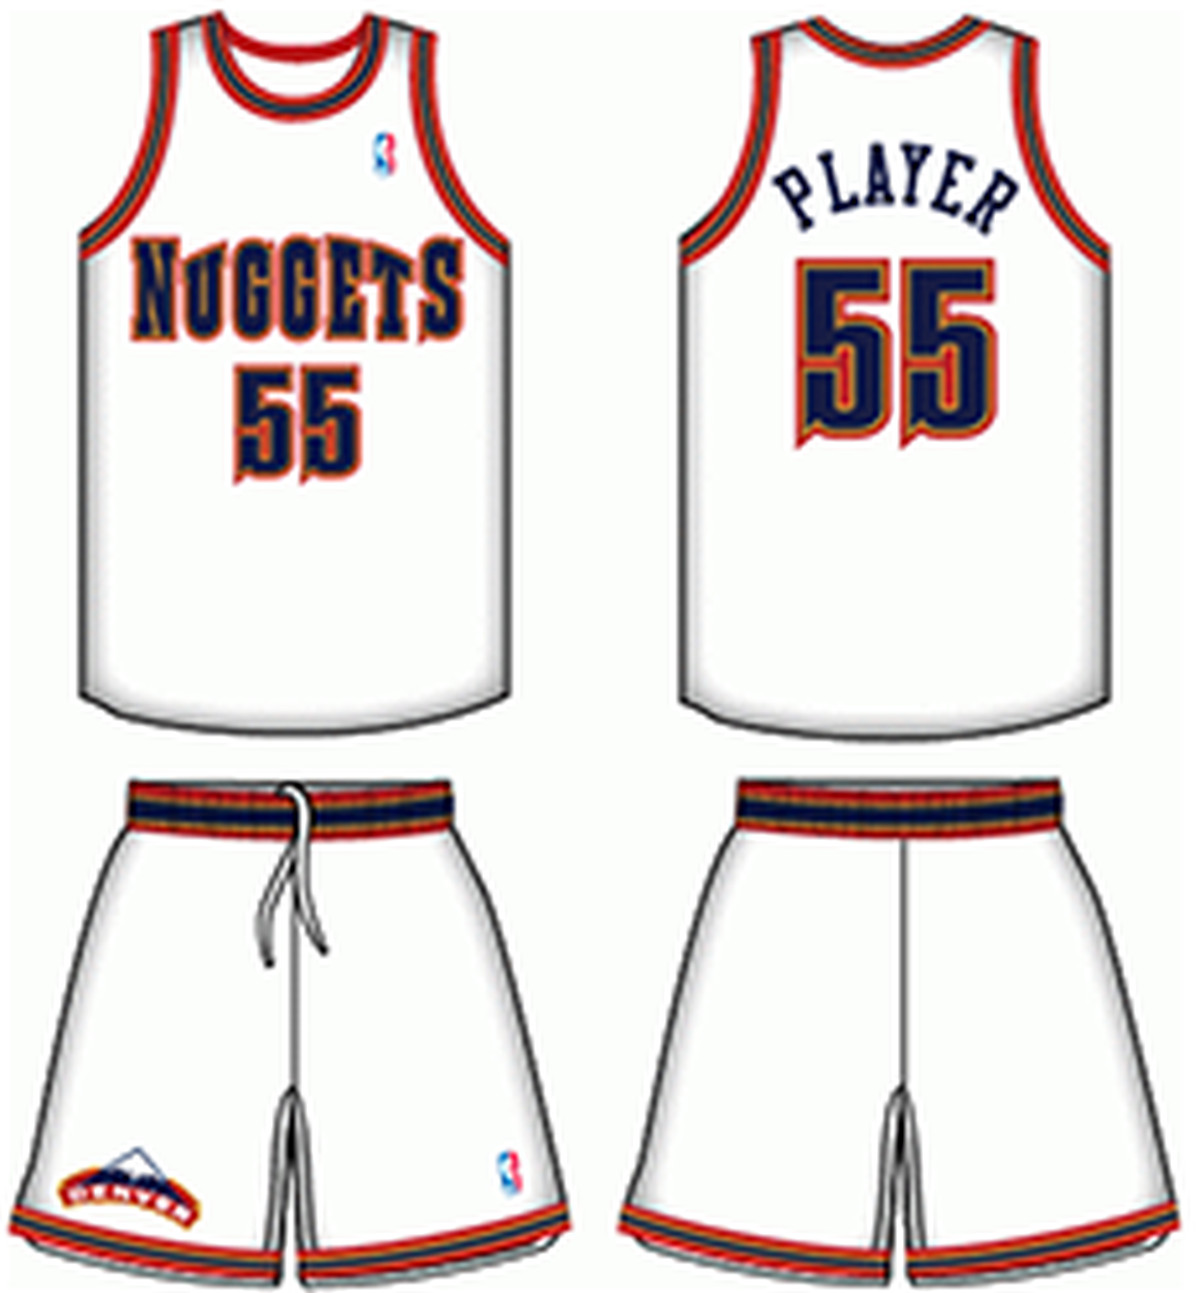 Nuggets Jersey Rainbow: Denver Nuggets: Who Wore It Best?